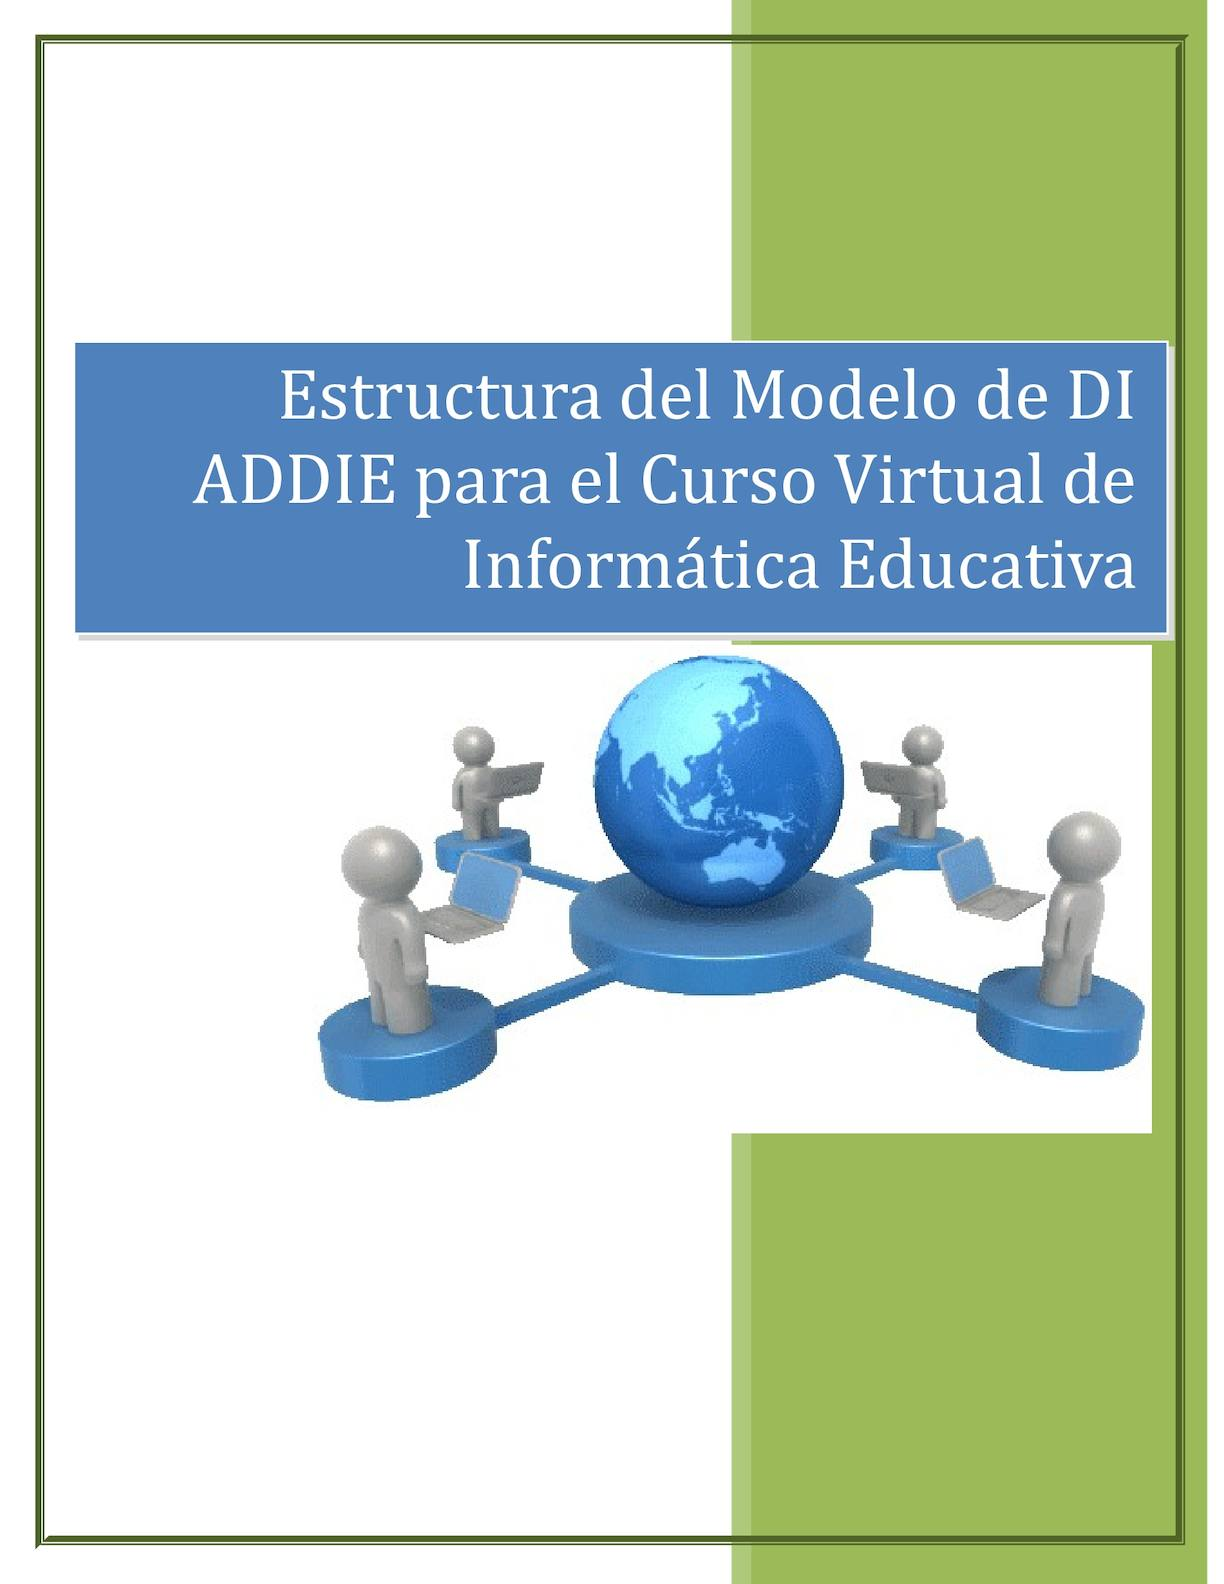 Curso Virtual - Informática Educativa